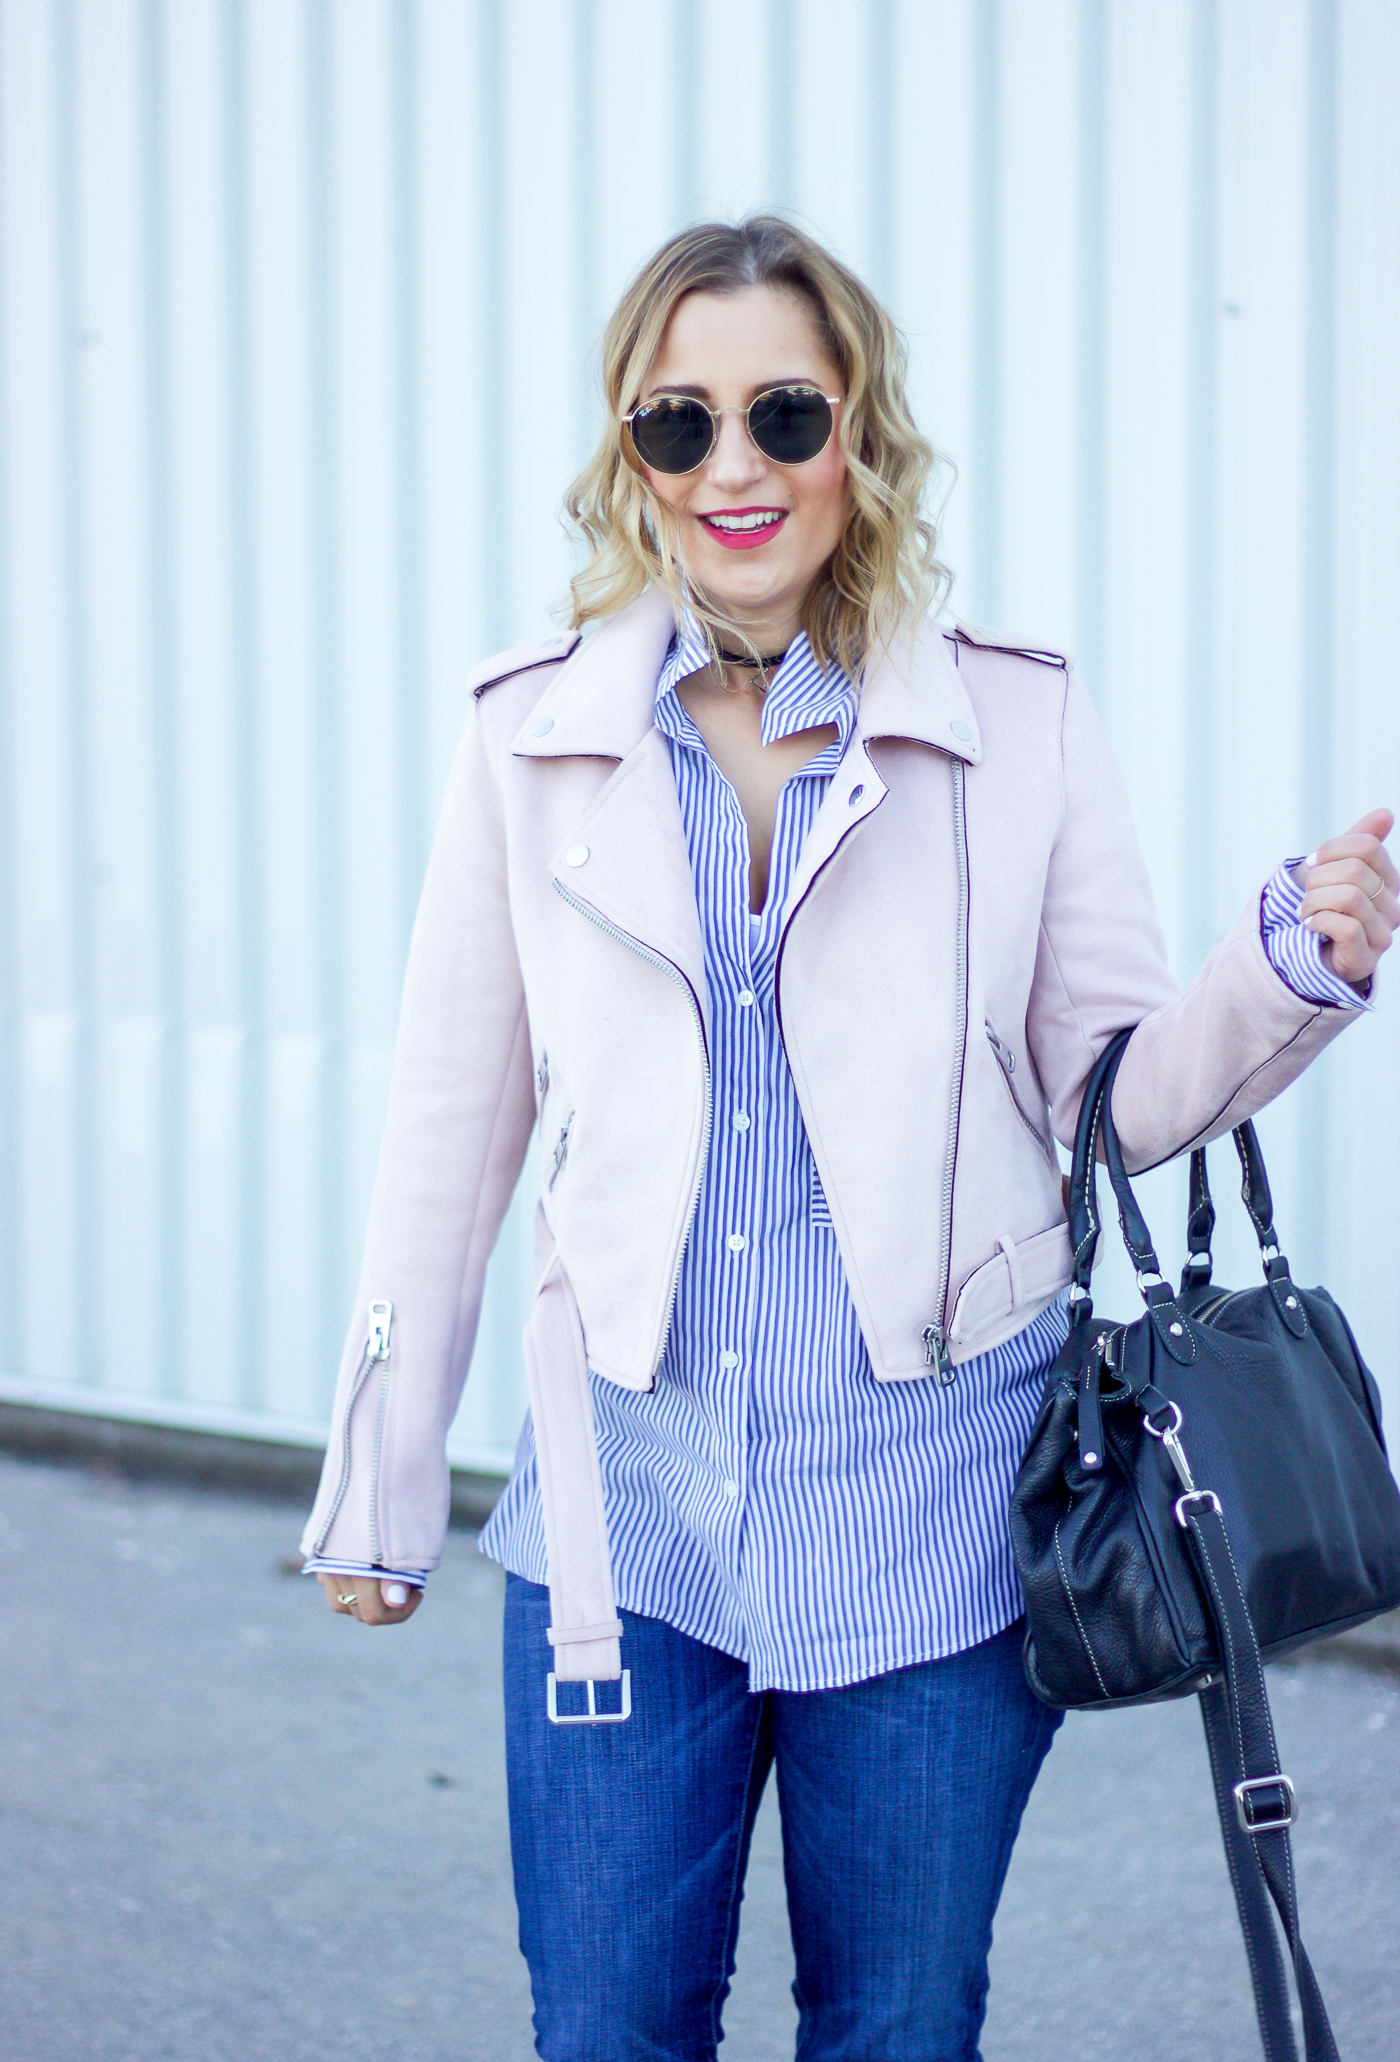 Canadian life and style blogger, Jackie Goldhar of Something About That, shows how to wear a pastel pink jacket for spring